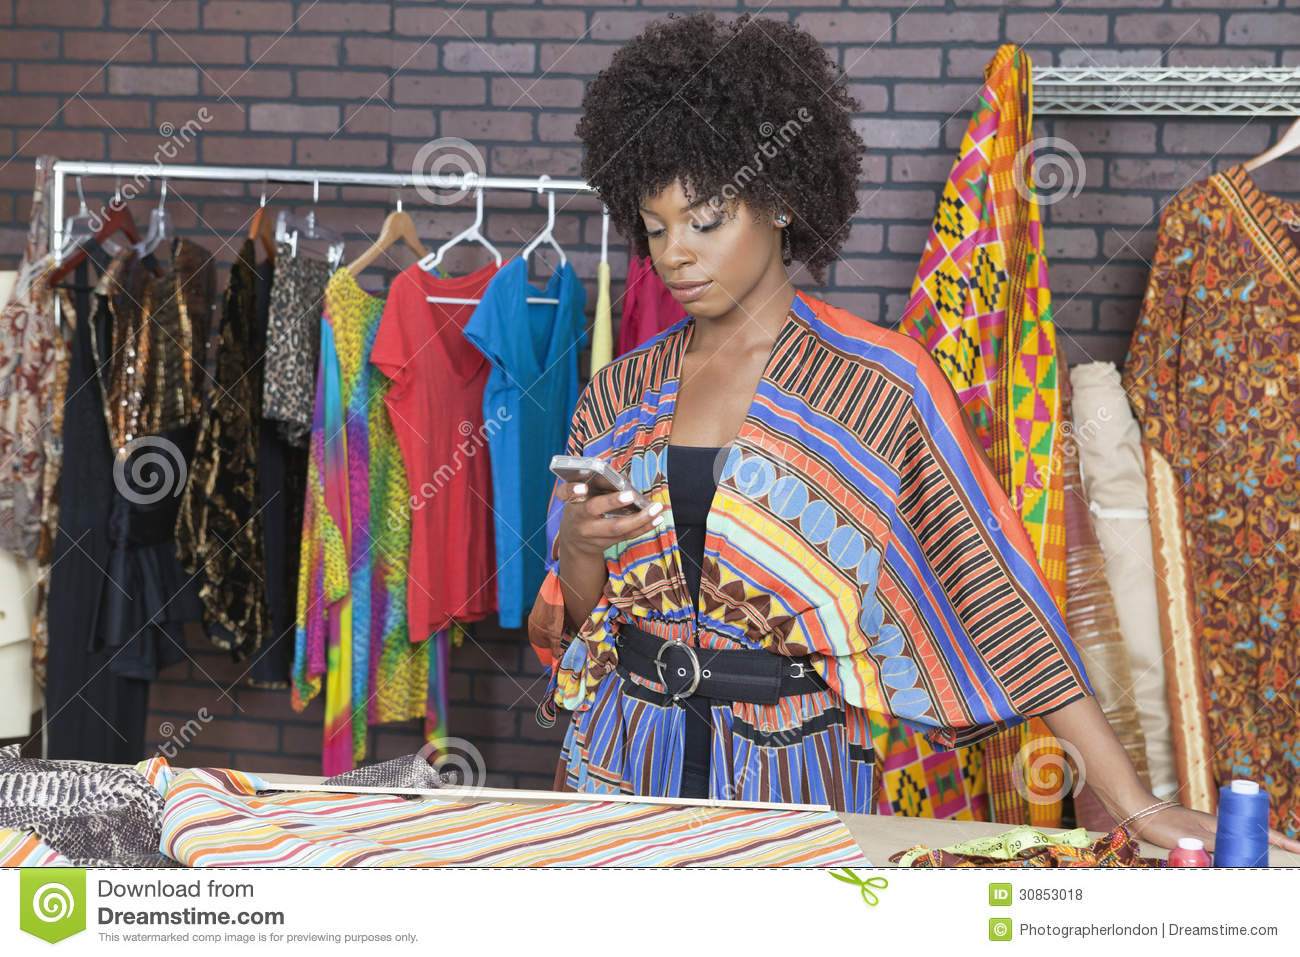 Attractive African American Female Fashion Designer Using Cell Phone Stock Photo Image Of Ethnicity Hanger 30853018